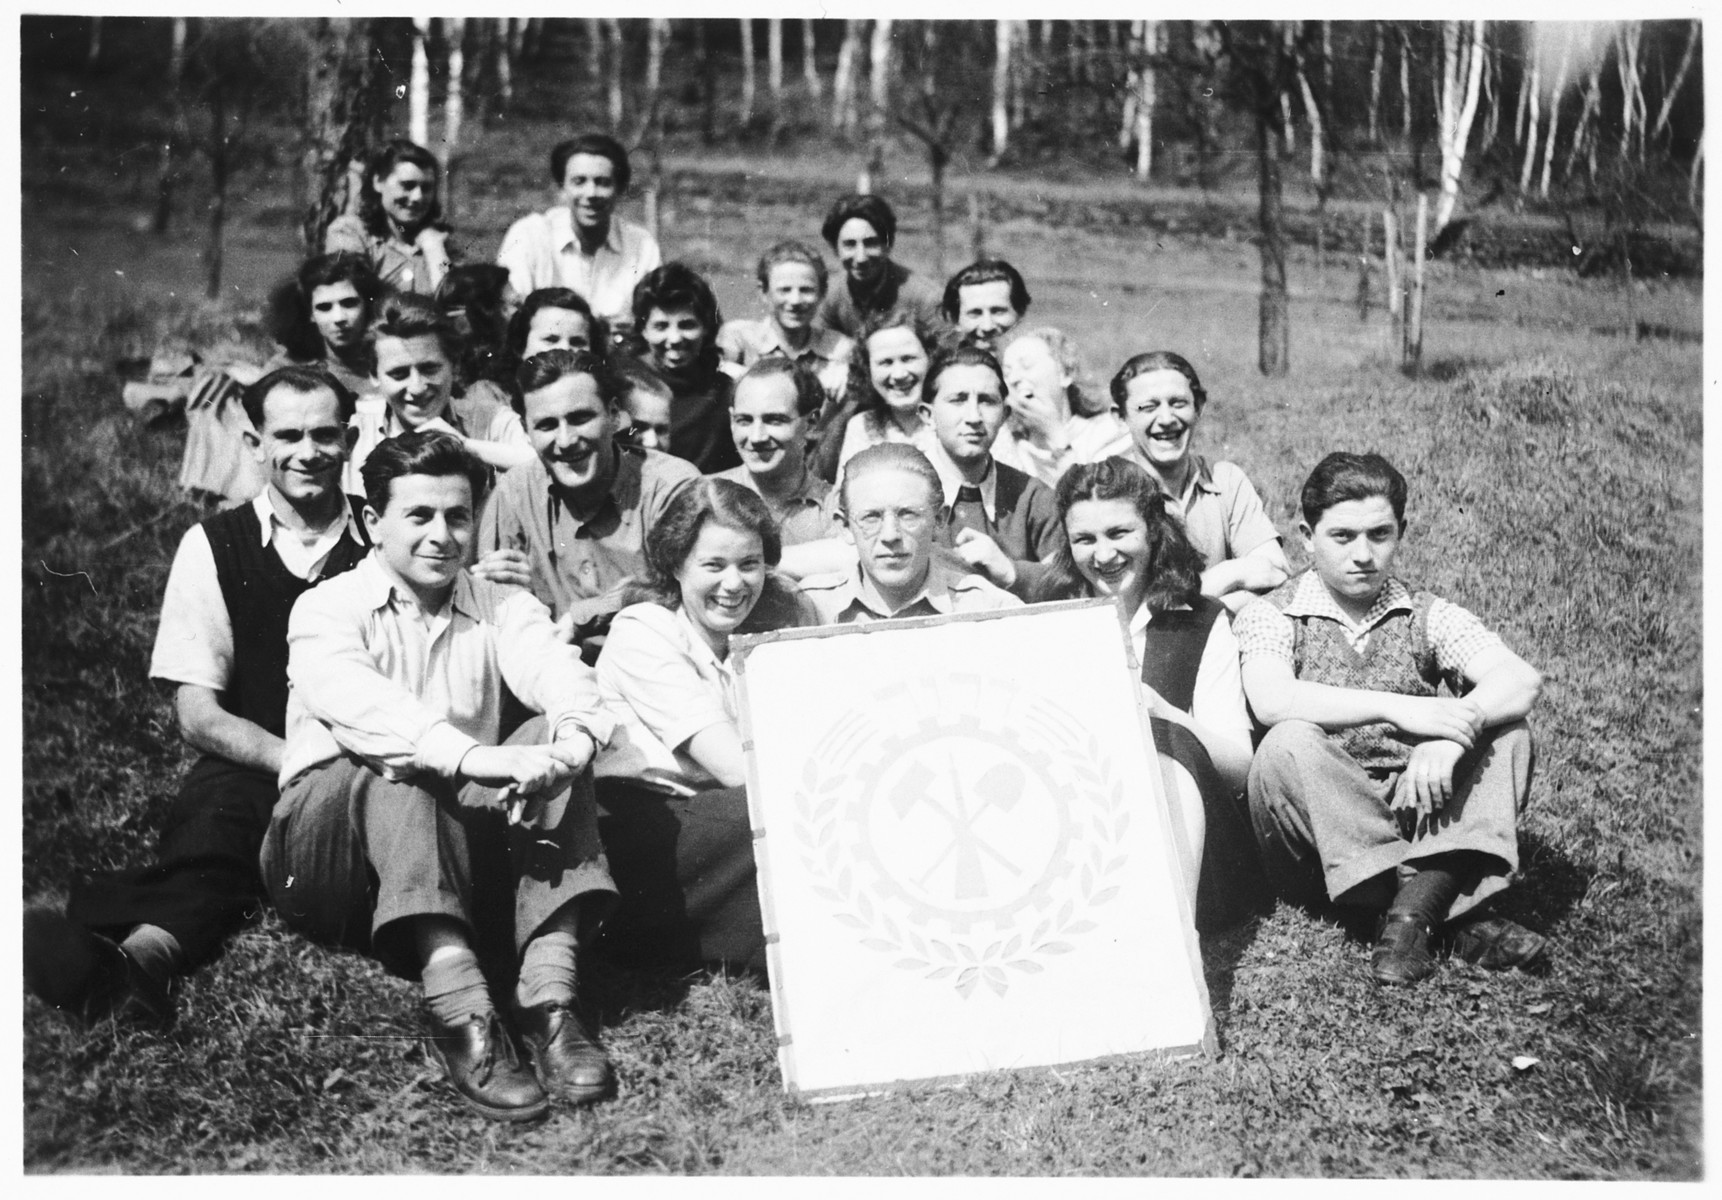 Group portrait of Jewish DPs of the Dror Hehalutz Zionist youth movement posing with a sign while on an outing in Czechoslovakia.